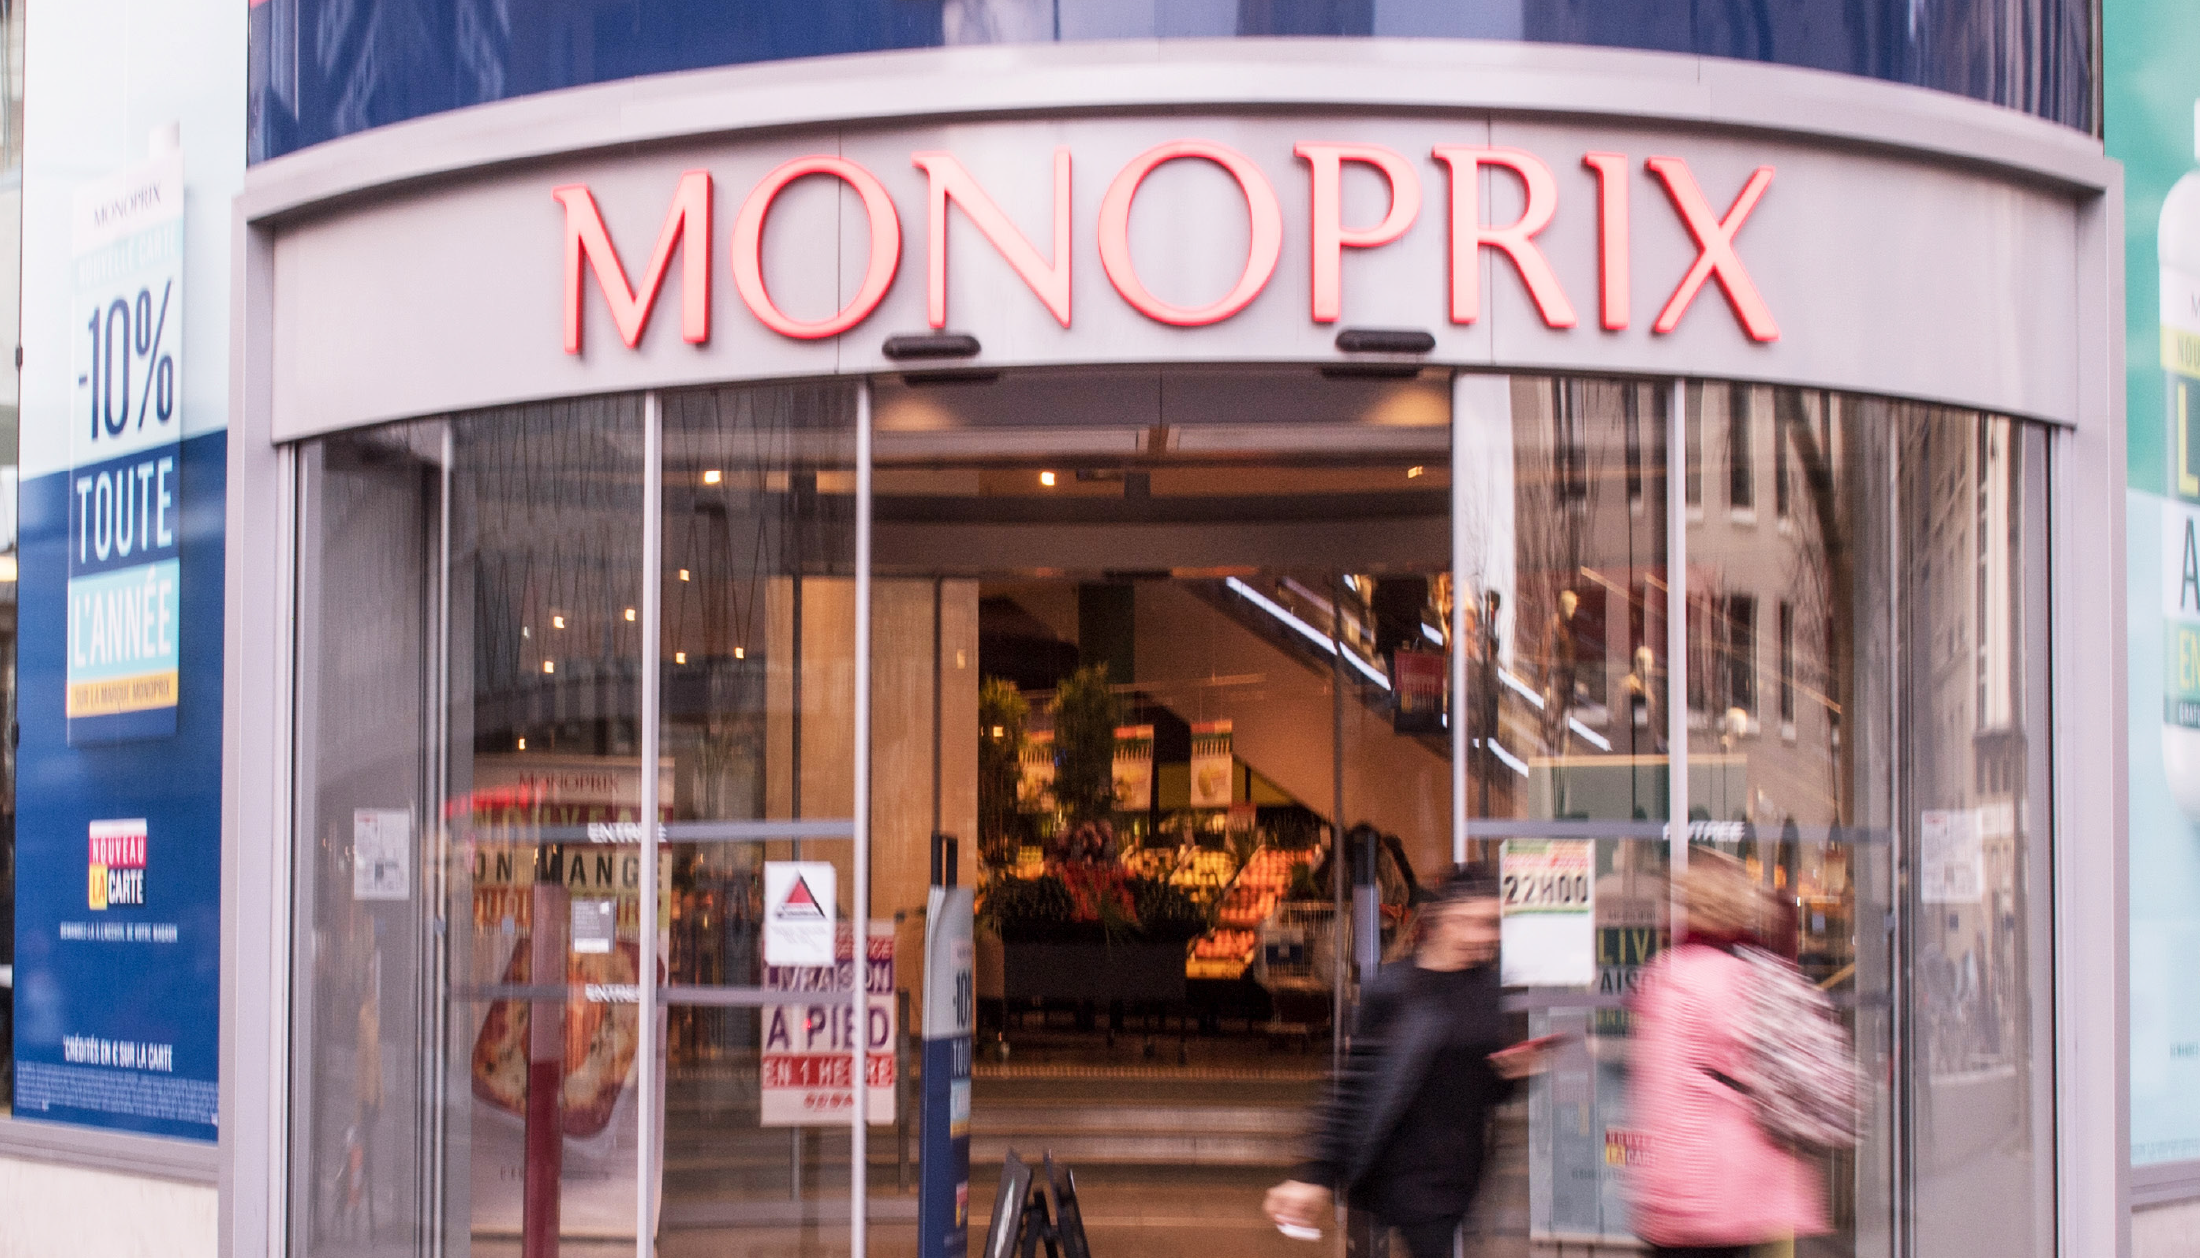 Bcase Monoprix - resized